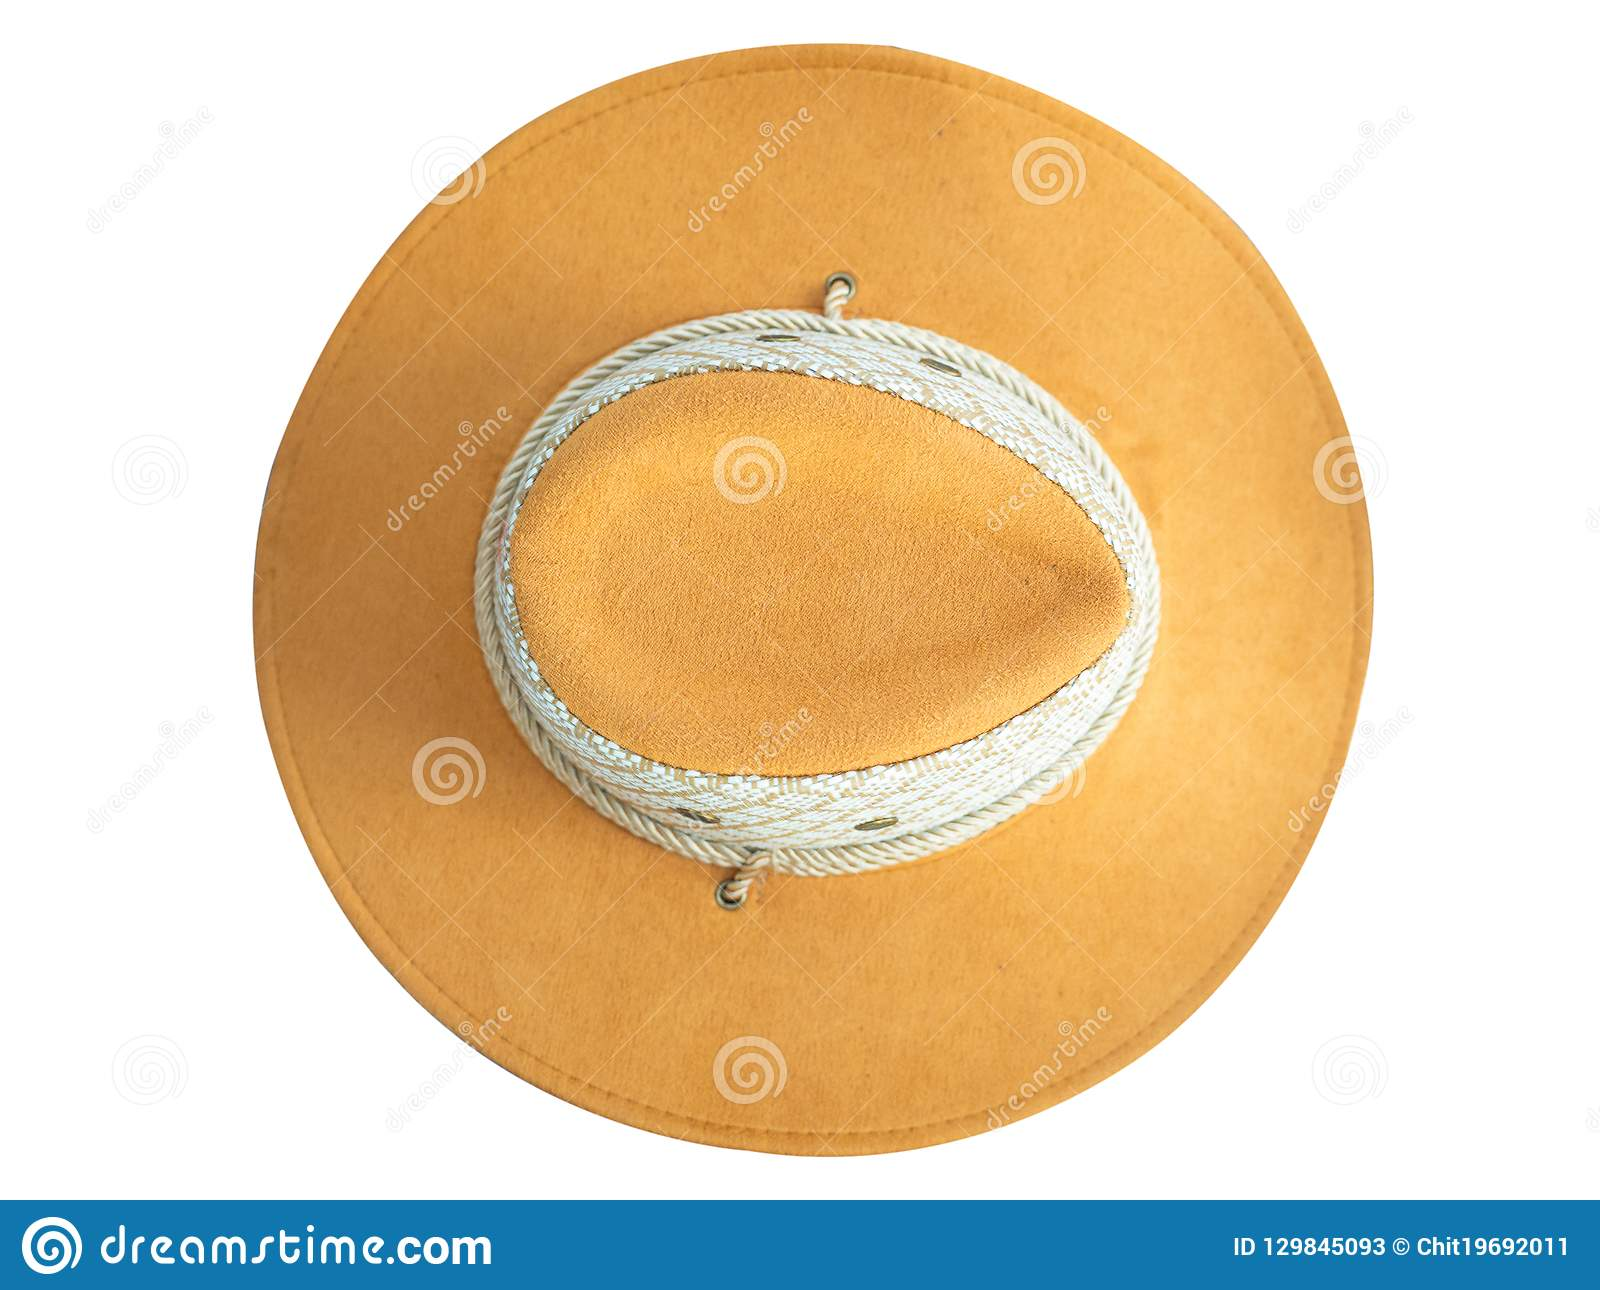 d05bad0bf3c Cowboy Hat On White Background. Clipping Path Stock Image - Image of ...